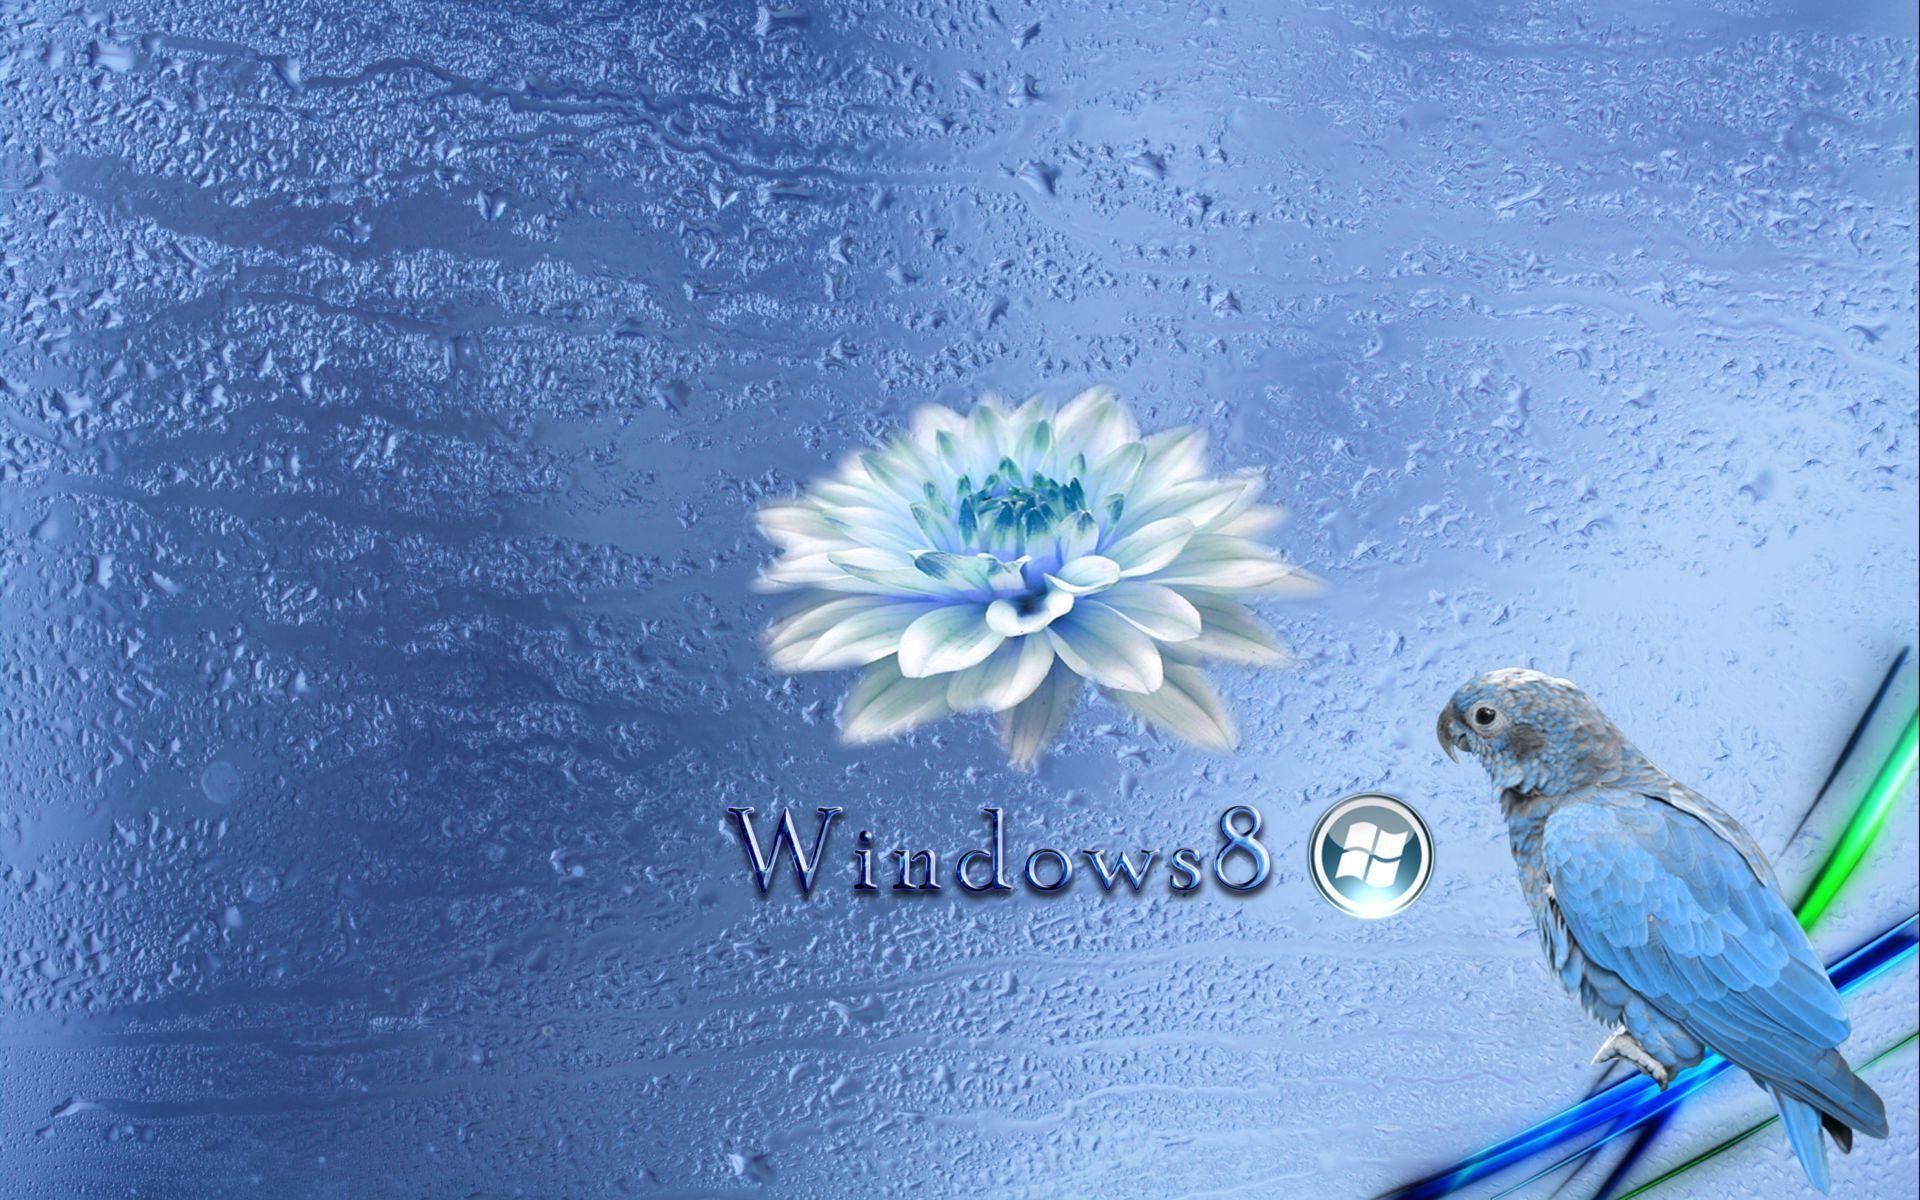 Free download live wallpapers for windows 8